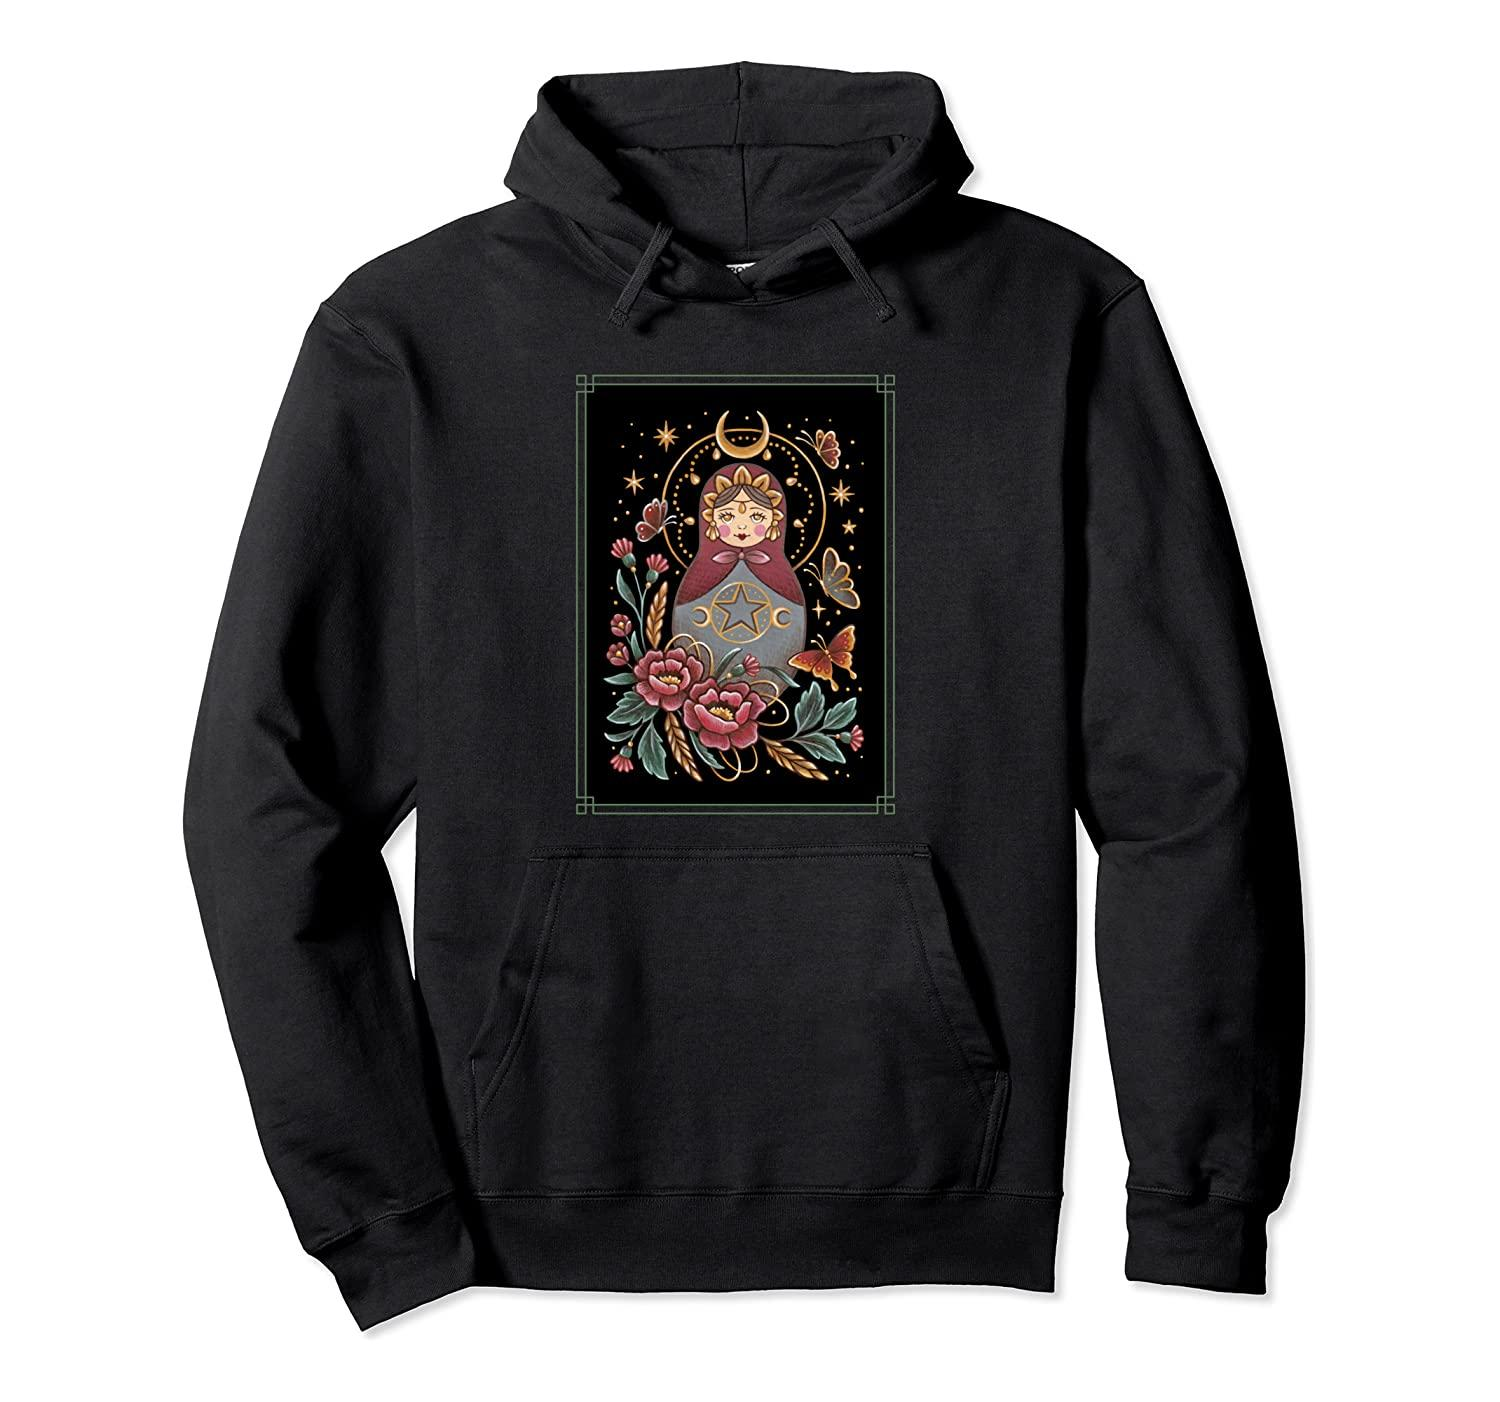 Matryoshka Russian Nesting Doll Pullover Hoodie Unisex Size S-5XL with Color Black/Grey/Navy/Royal Blue/Dark Heather